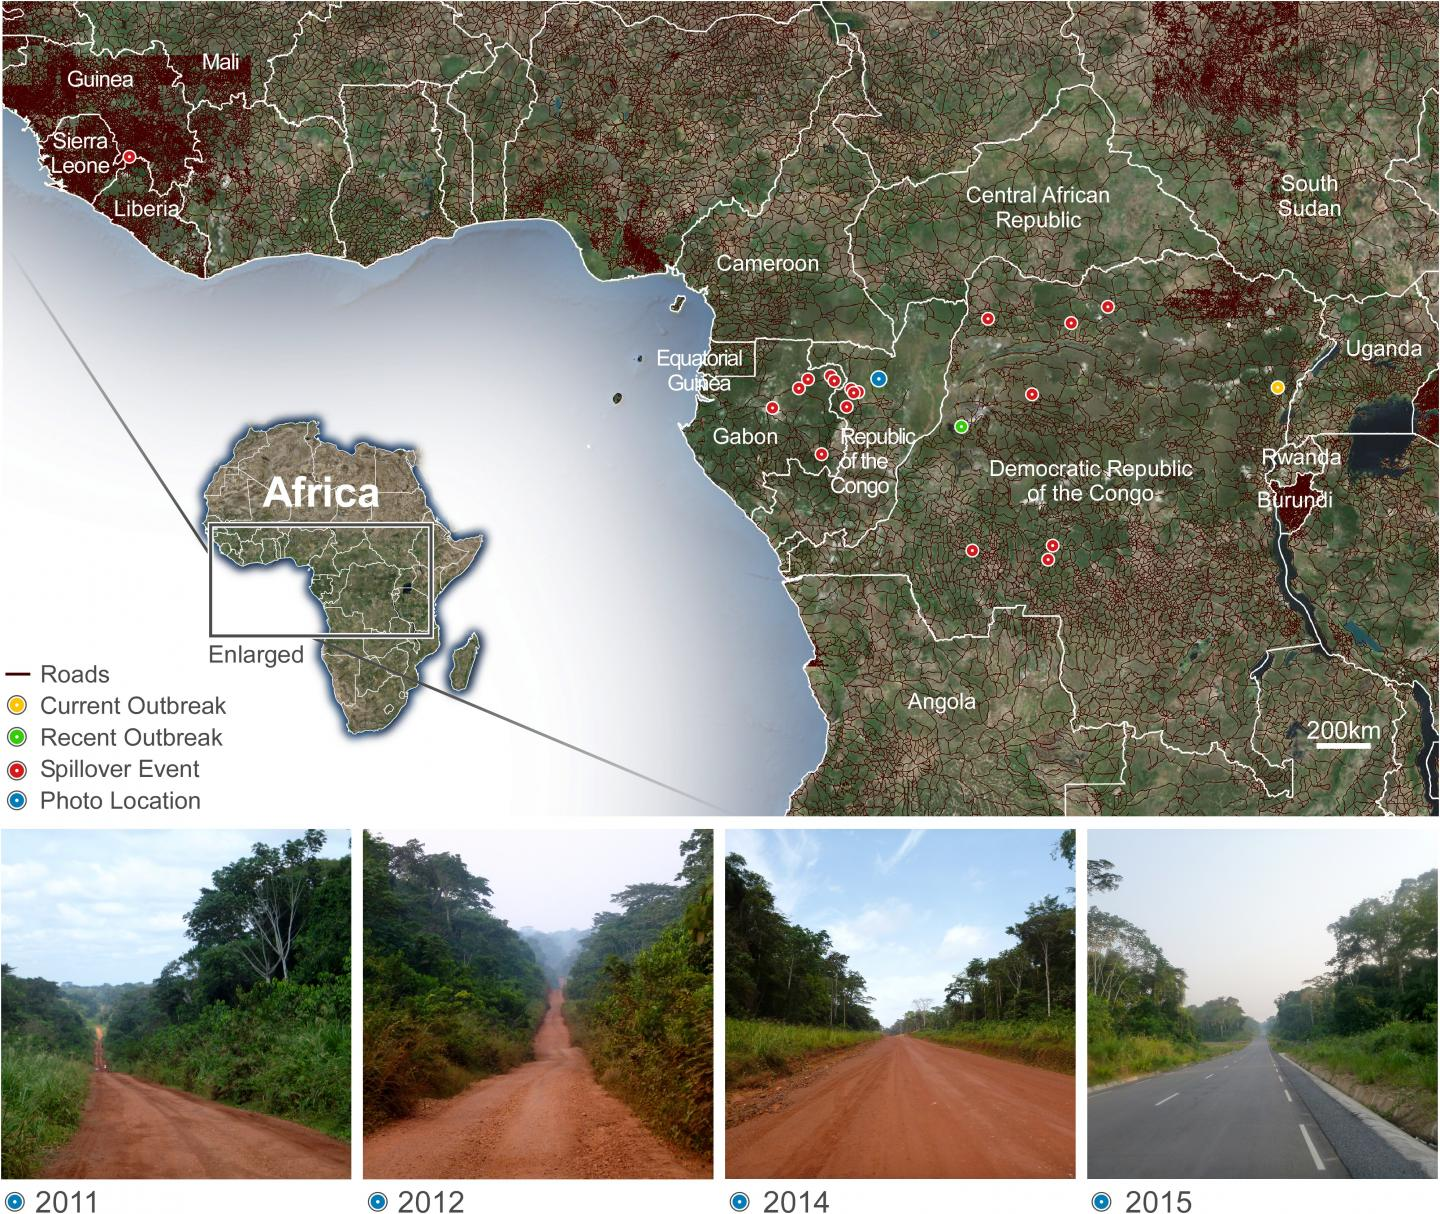 Map Illustrating Areas of Primary Human Infections of Zaire Ebolavirus and the Density of Roads